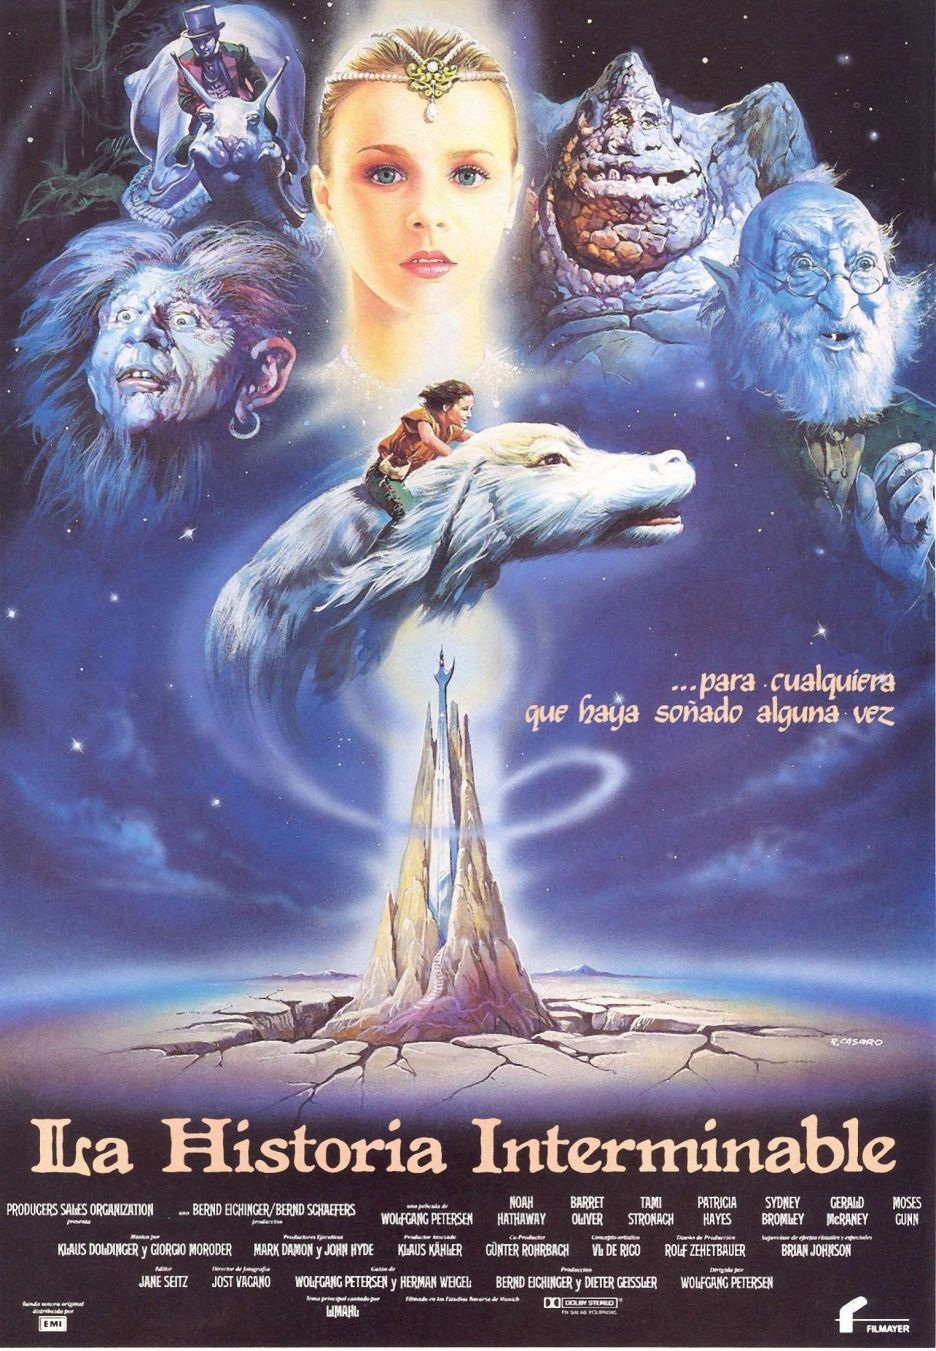 #The_Neverending_Story(1984) #Noah_Hathaway